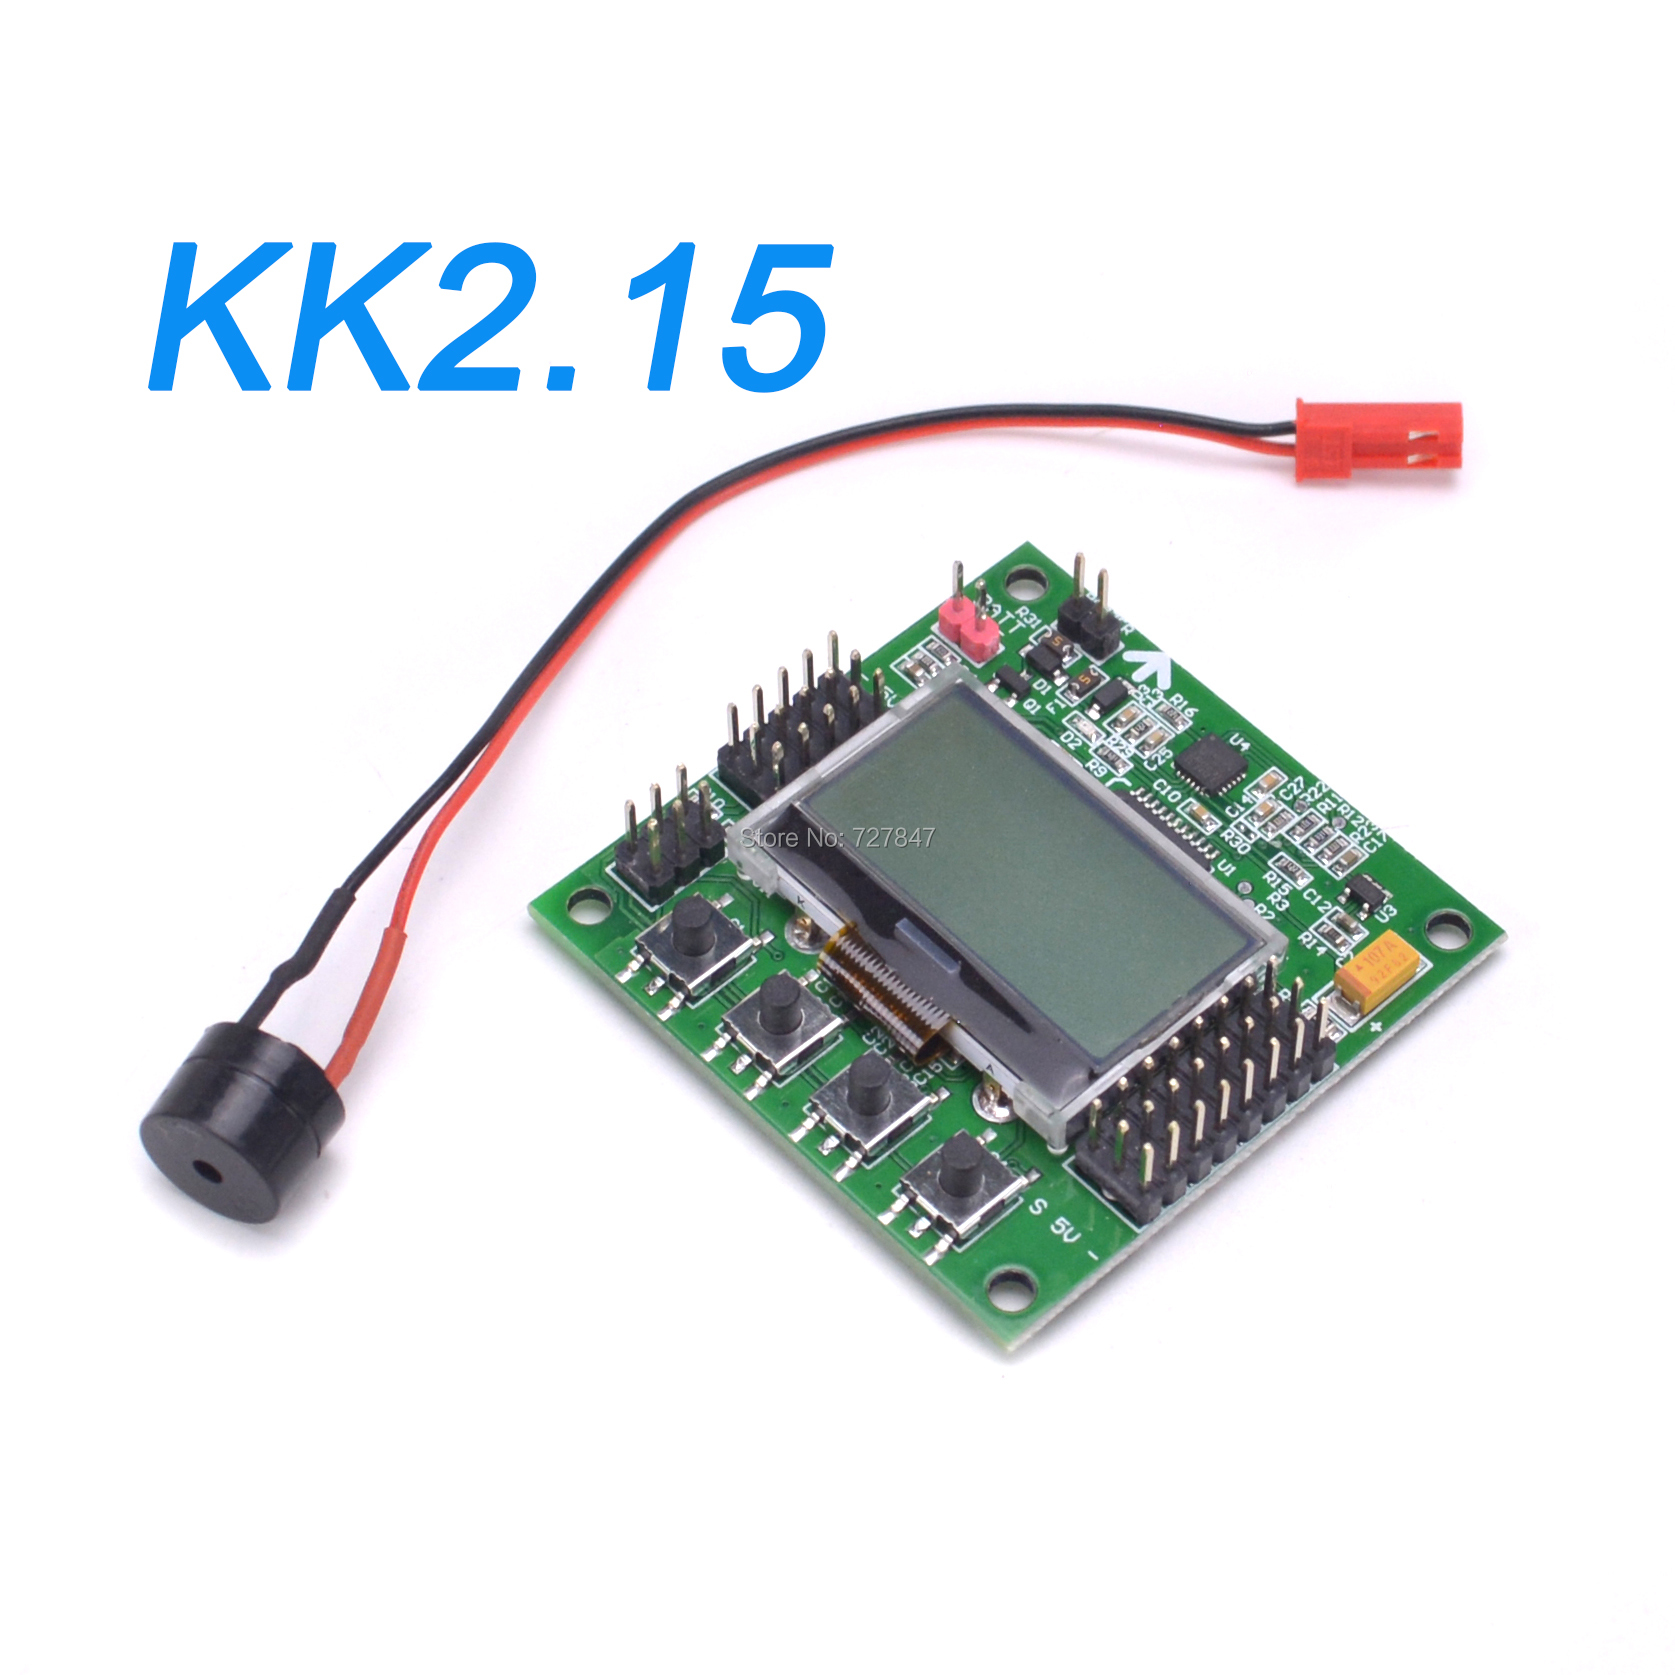 small resolution of kk 2 1 5 kk2 15 lcd multirotor flight control board kk2 1 5 for quadcopter kk2 6050mpu 644pa f450 f550 s500